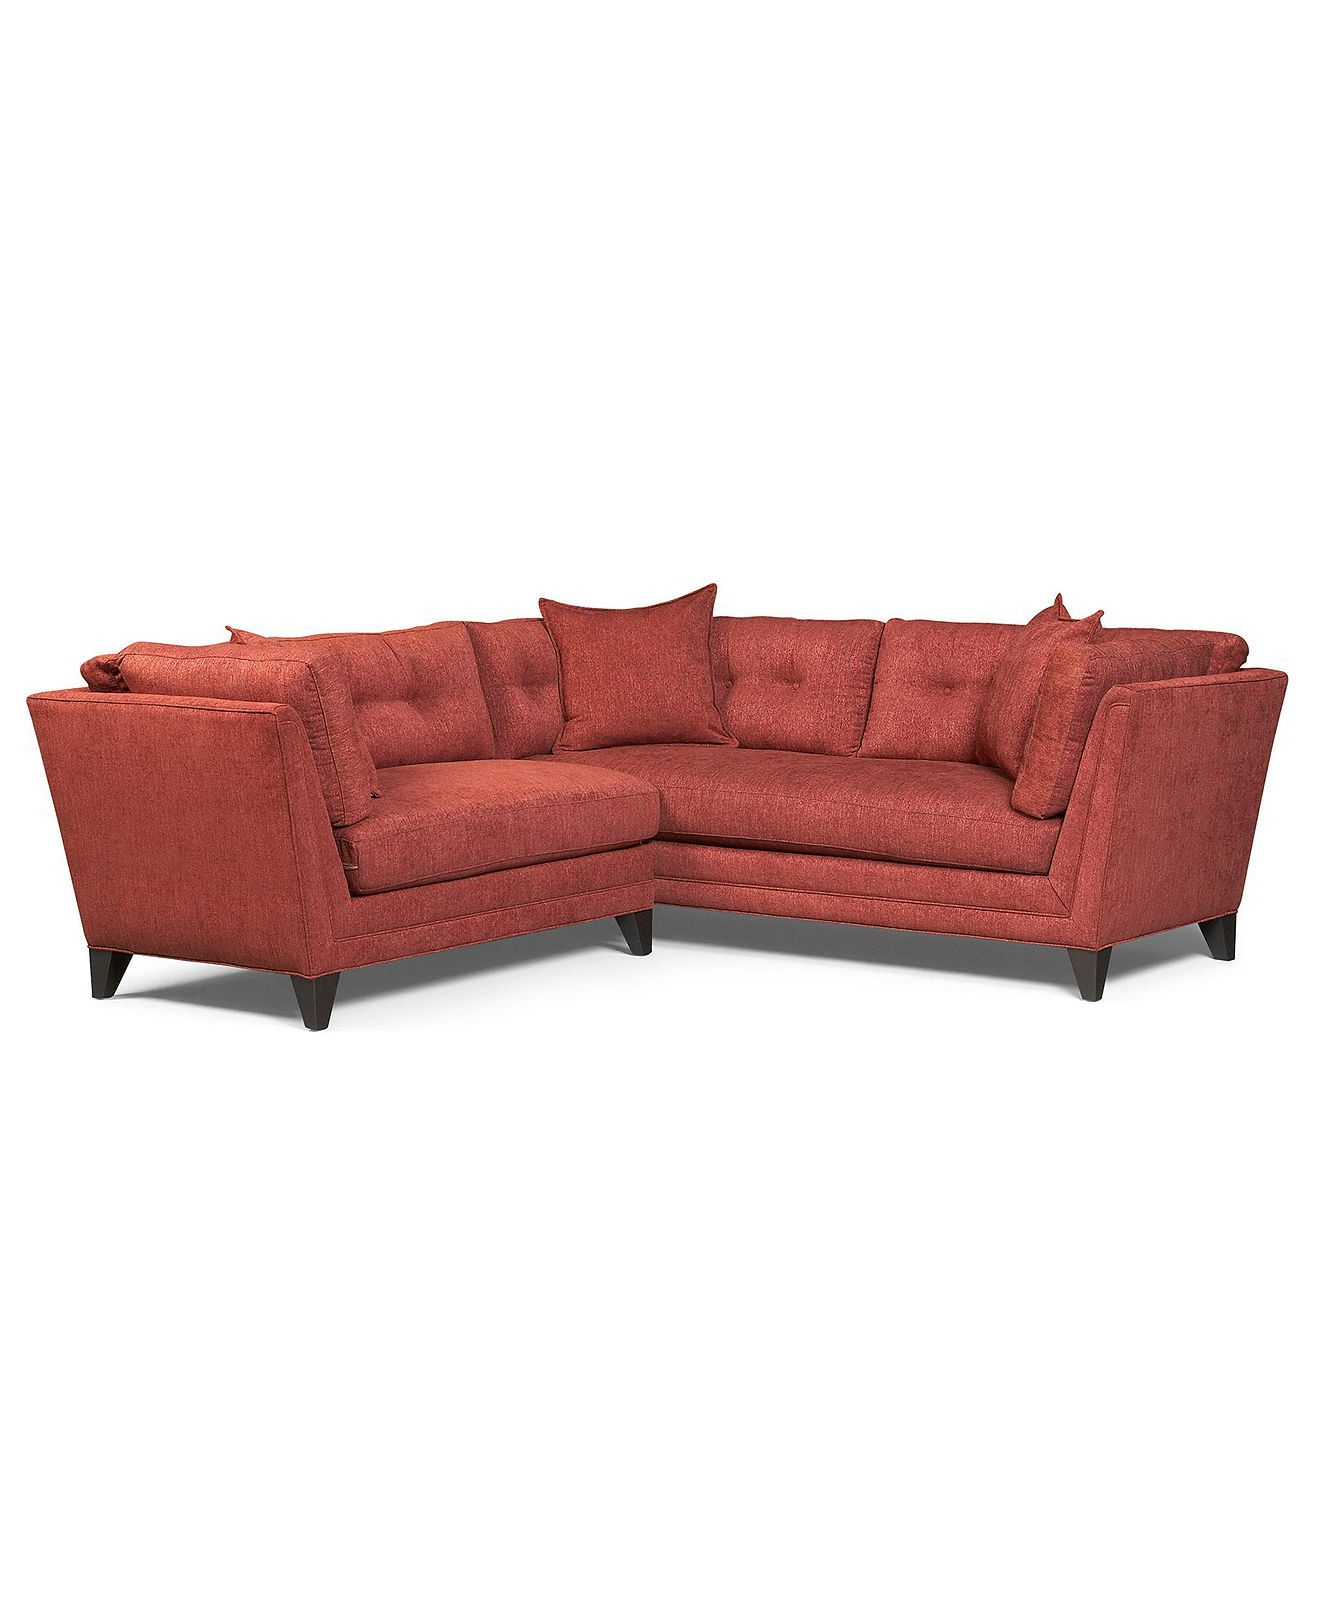 Well Known 2pc Maddox Left Arm Facing Sectional Sofas With Chaise Brown For Irene Fabric Sectional Sofa, 2 Piece (1 Arm Sofa And 1 Arm (View 16 of 20)